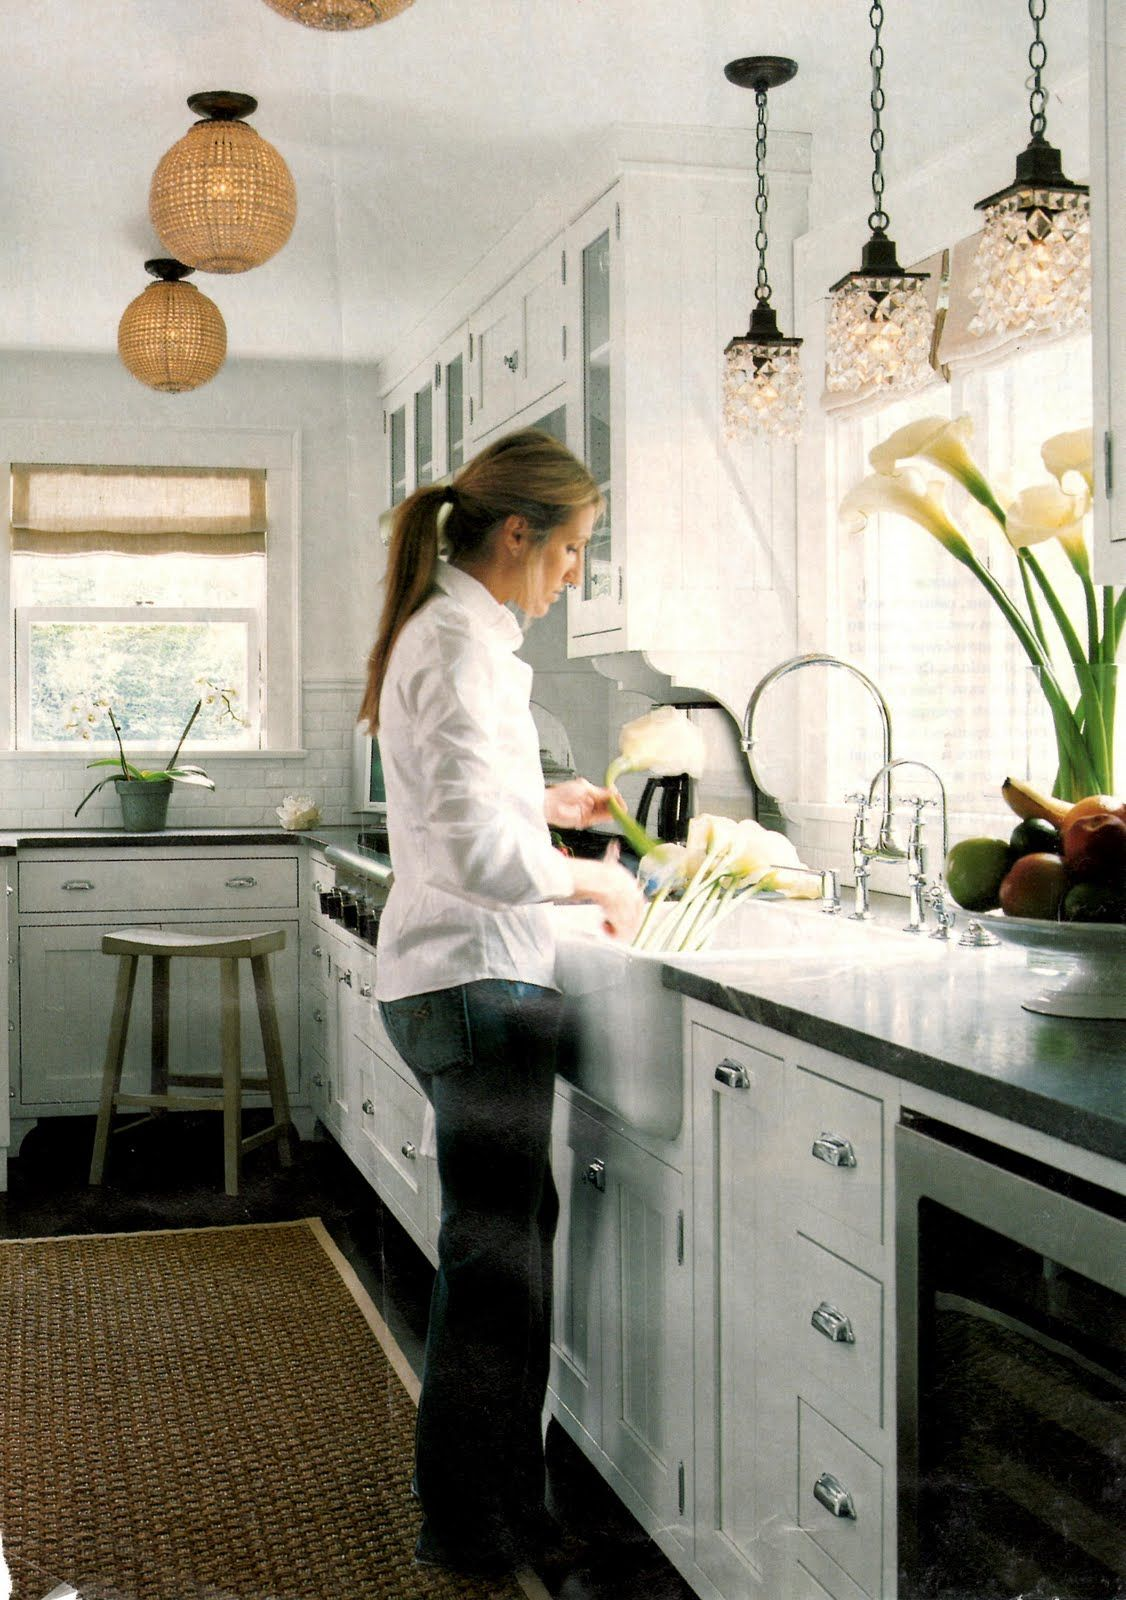 Lighting Over Kitchen Sink Images Google Search Home Pinterest Google Images Sinks And